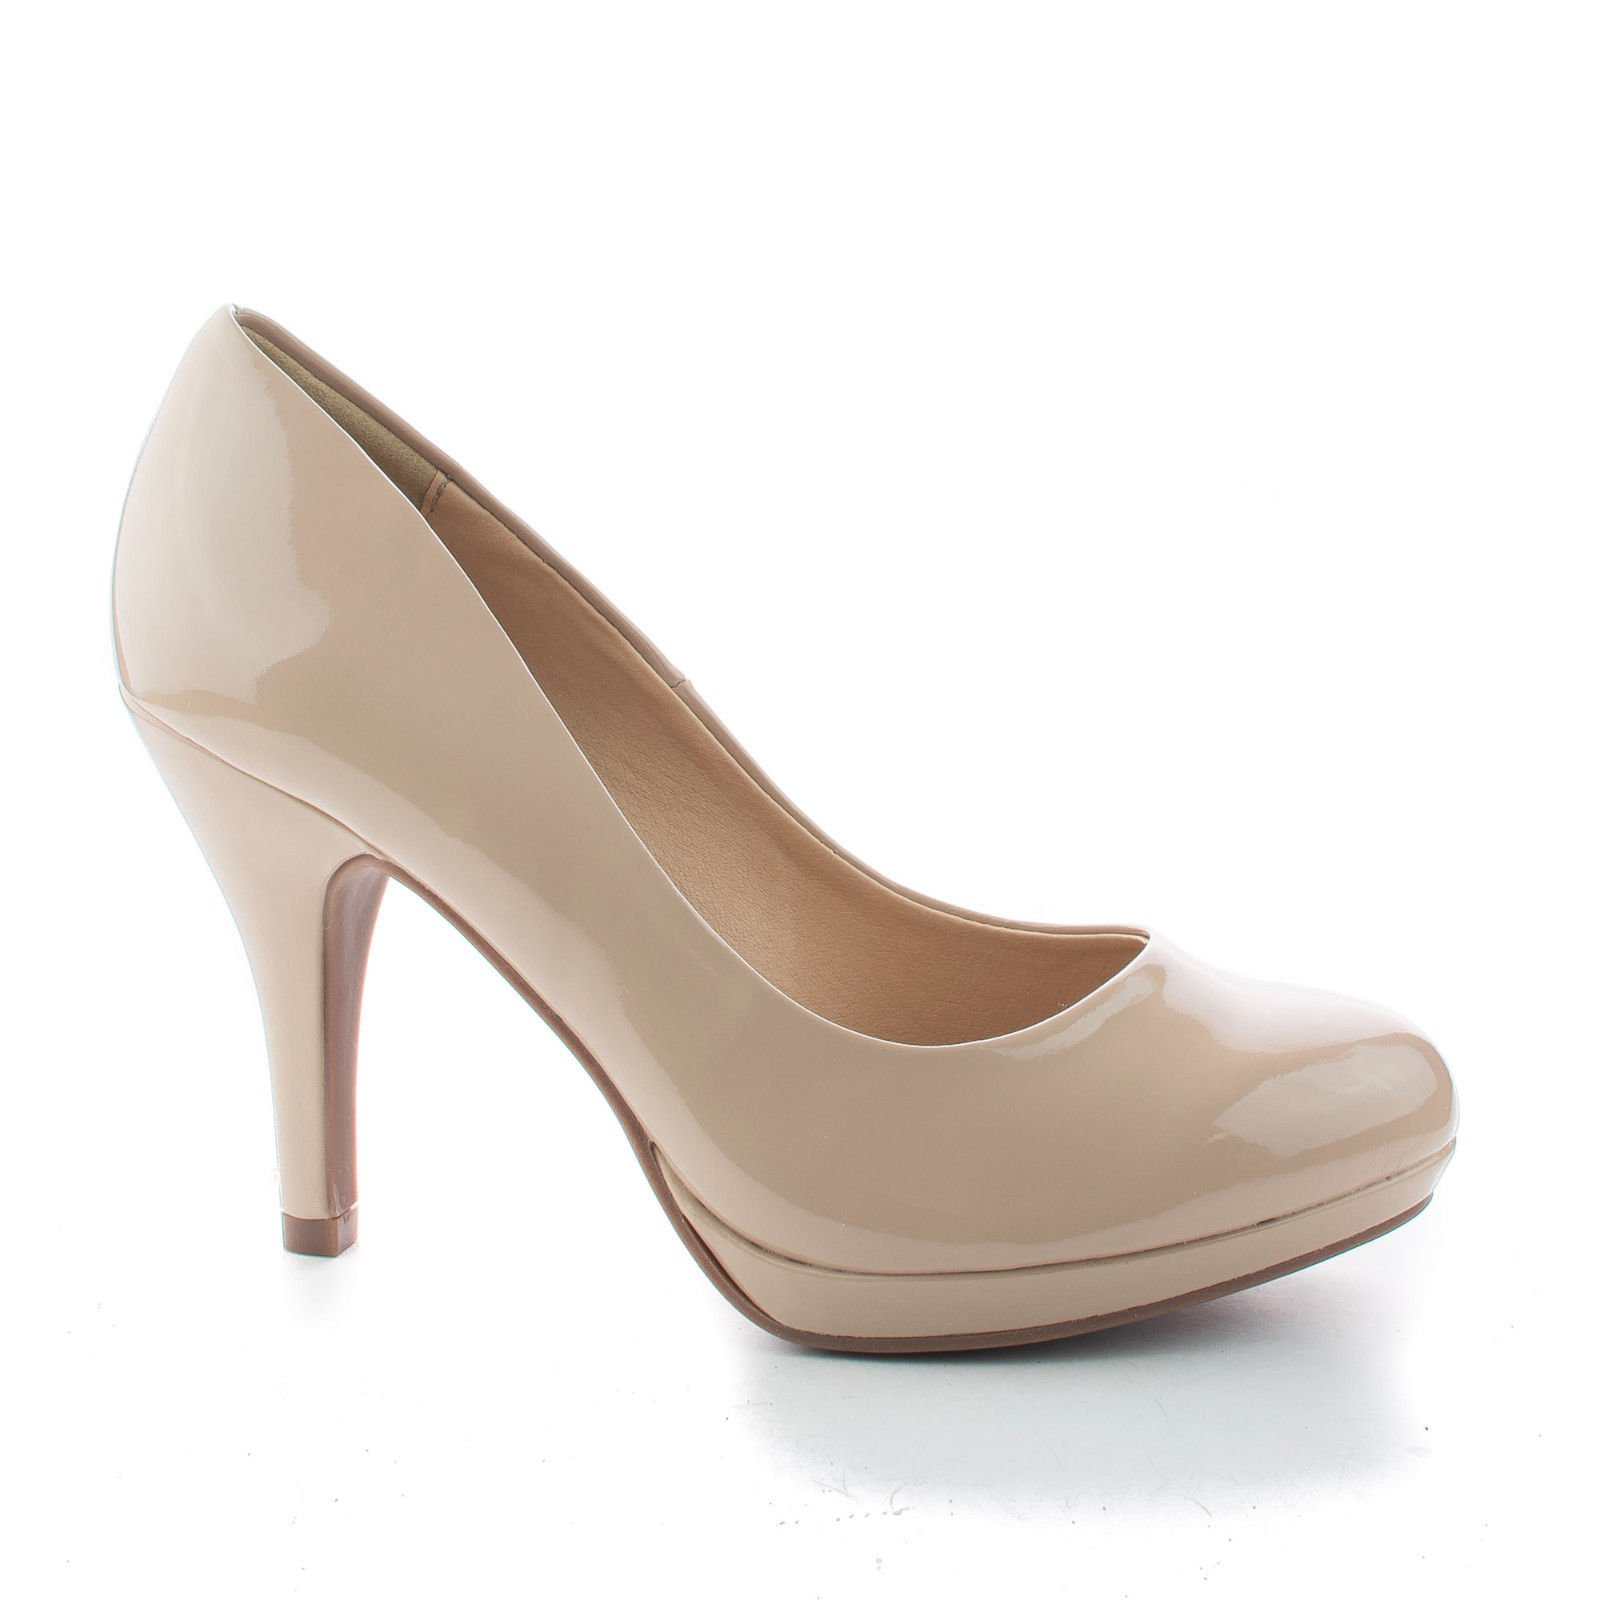 Sully's Round Toe Extra Cushioned Comfort Classic Dress Work Pumps (7 M US, Beige Pat)